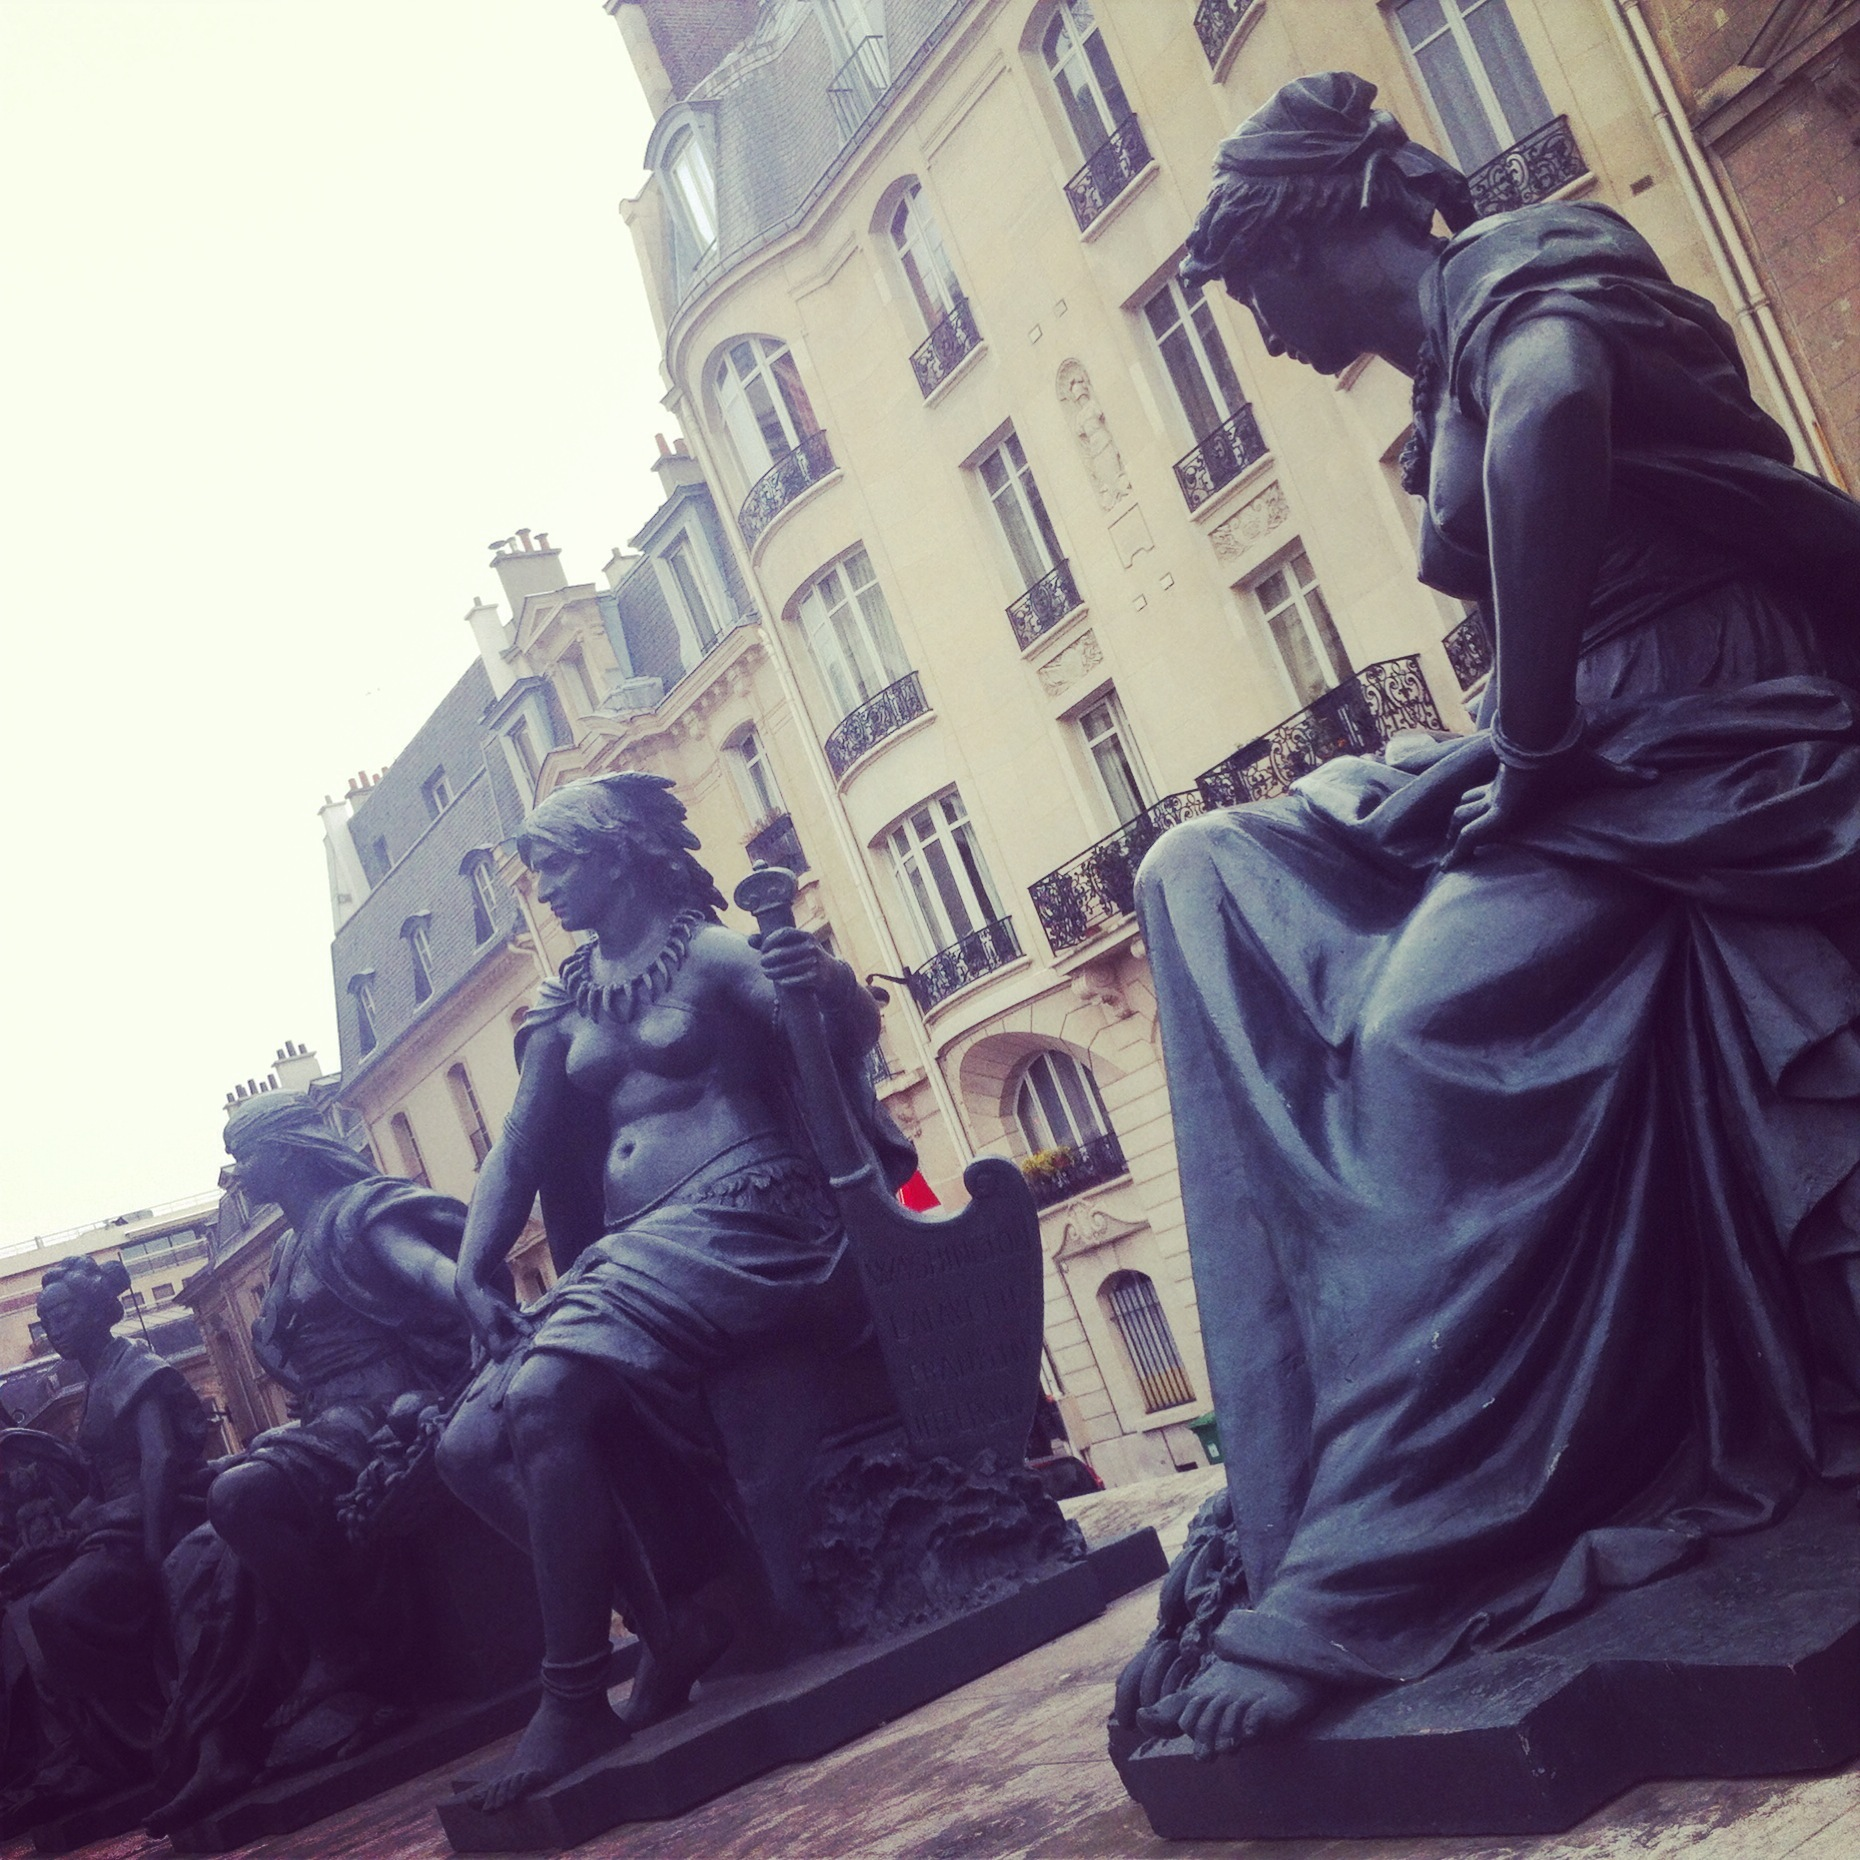 Statuary outside the Musee D'Orsay in Paris